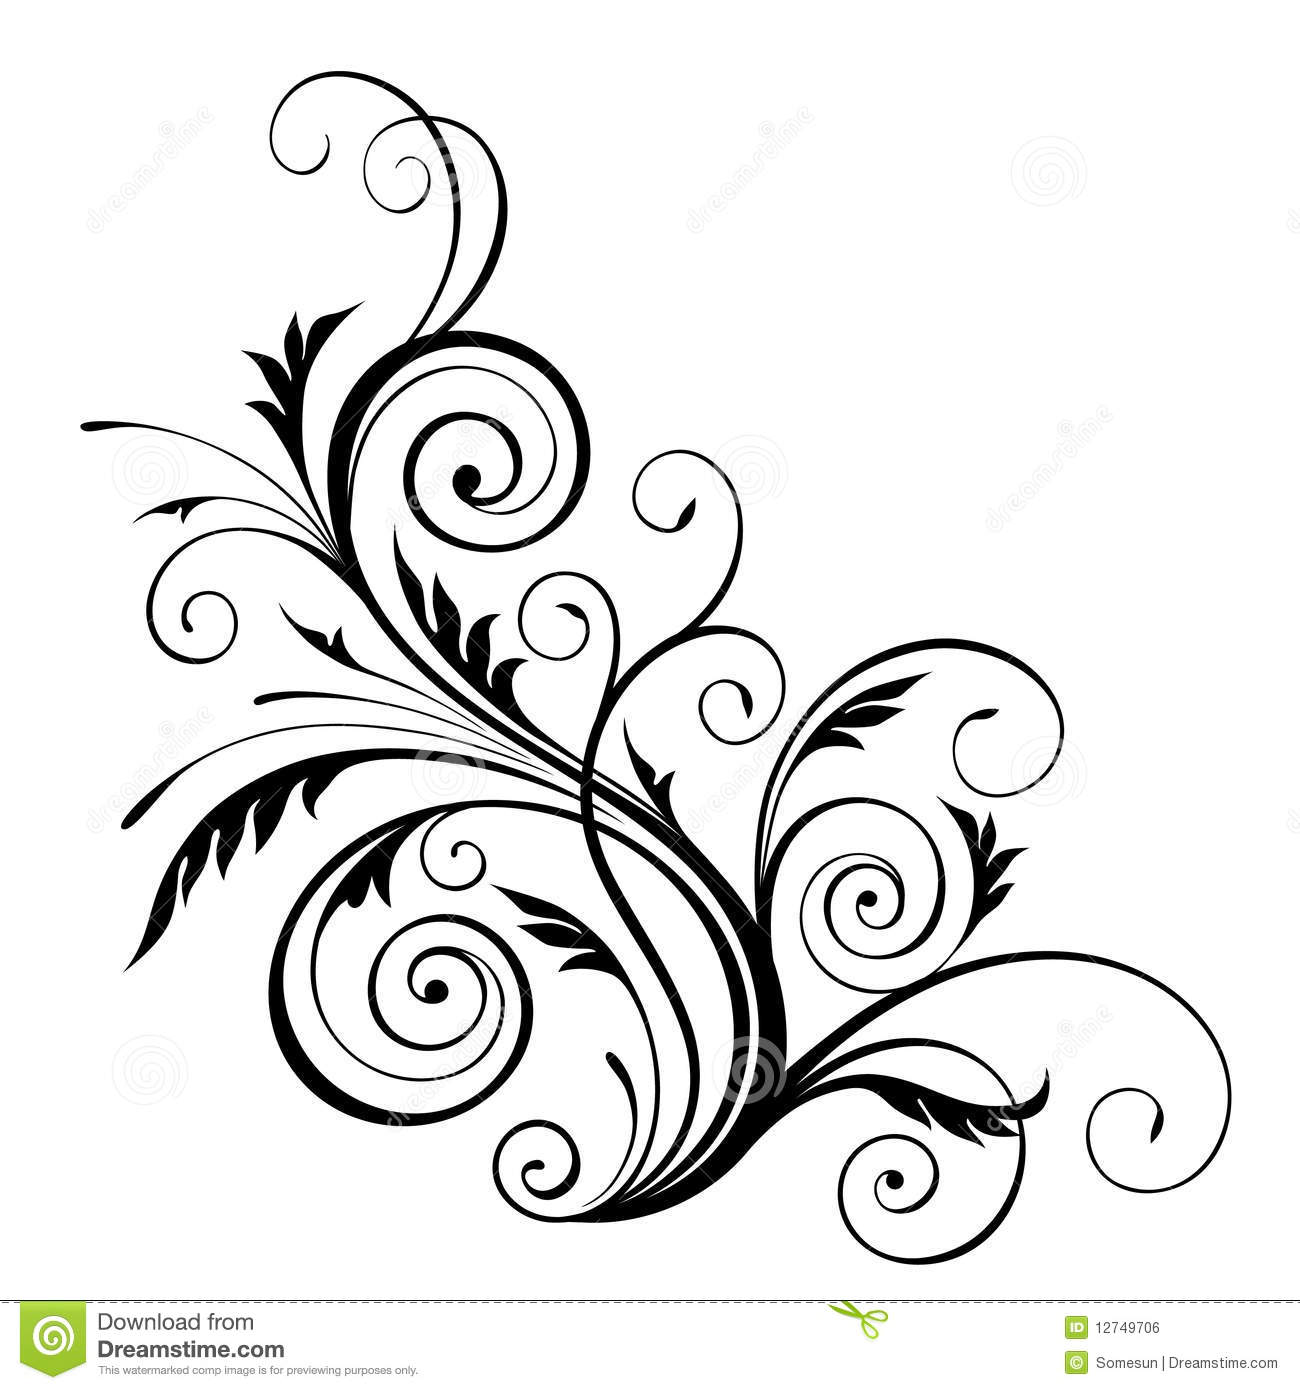 Line Art Vector Design : Single floral vector design elements images